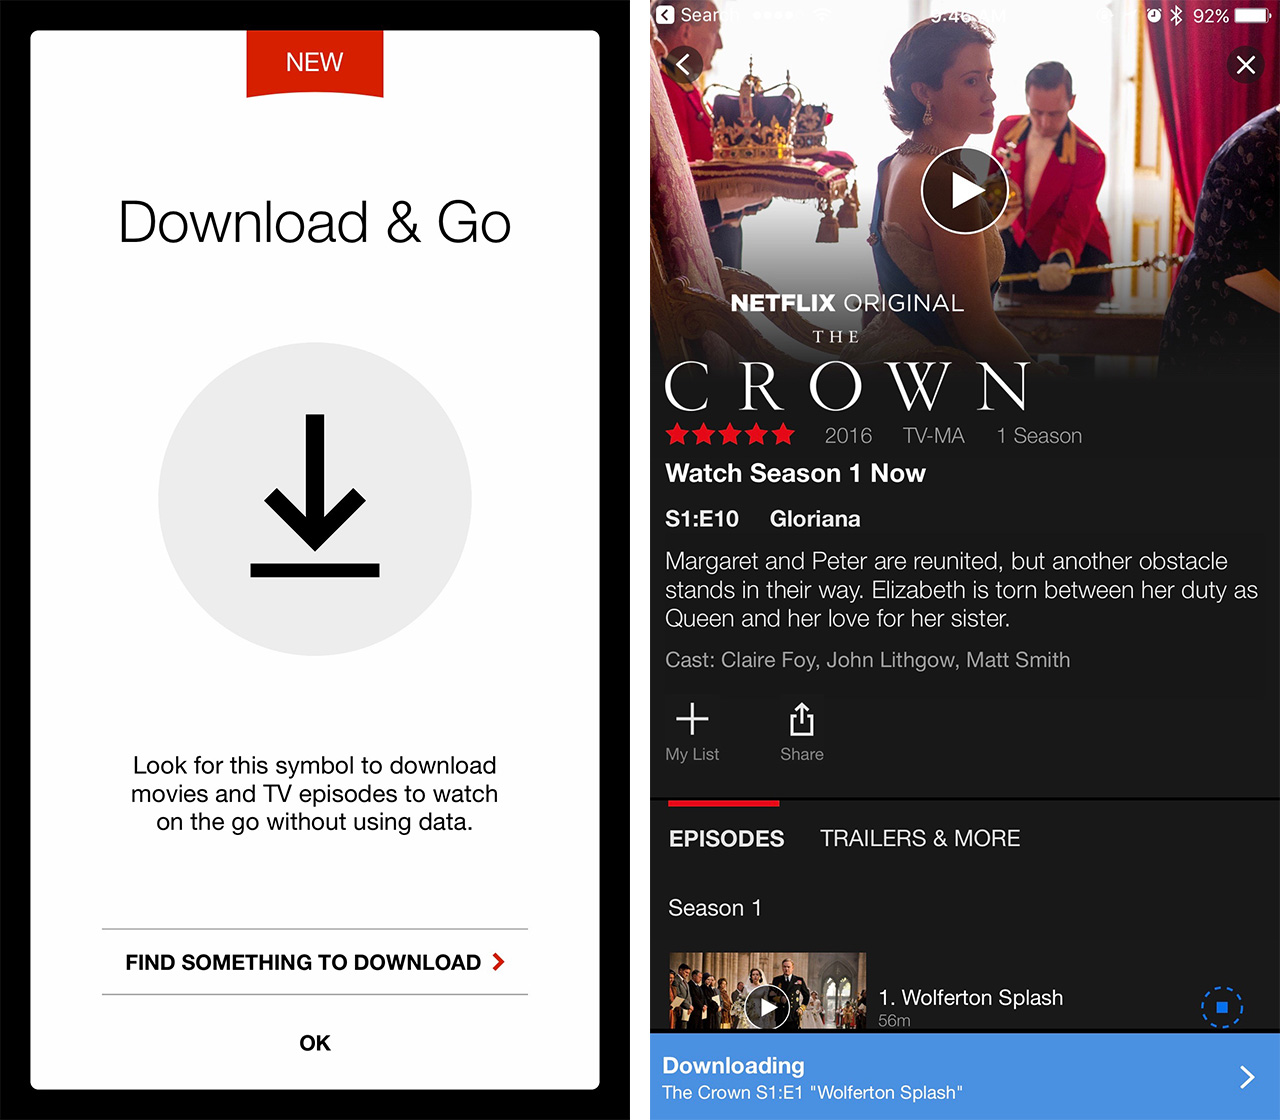 Offline playback comes to Canadian Netflix | MobileSyrup